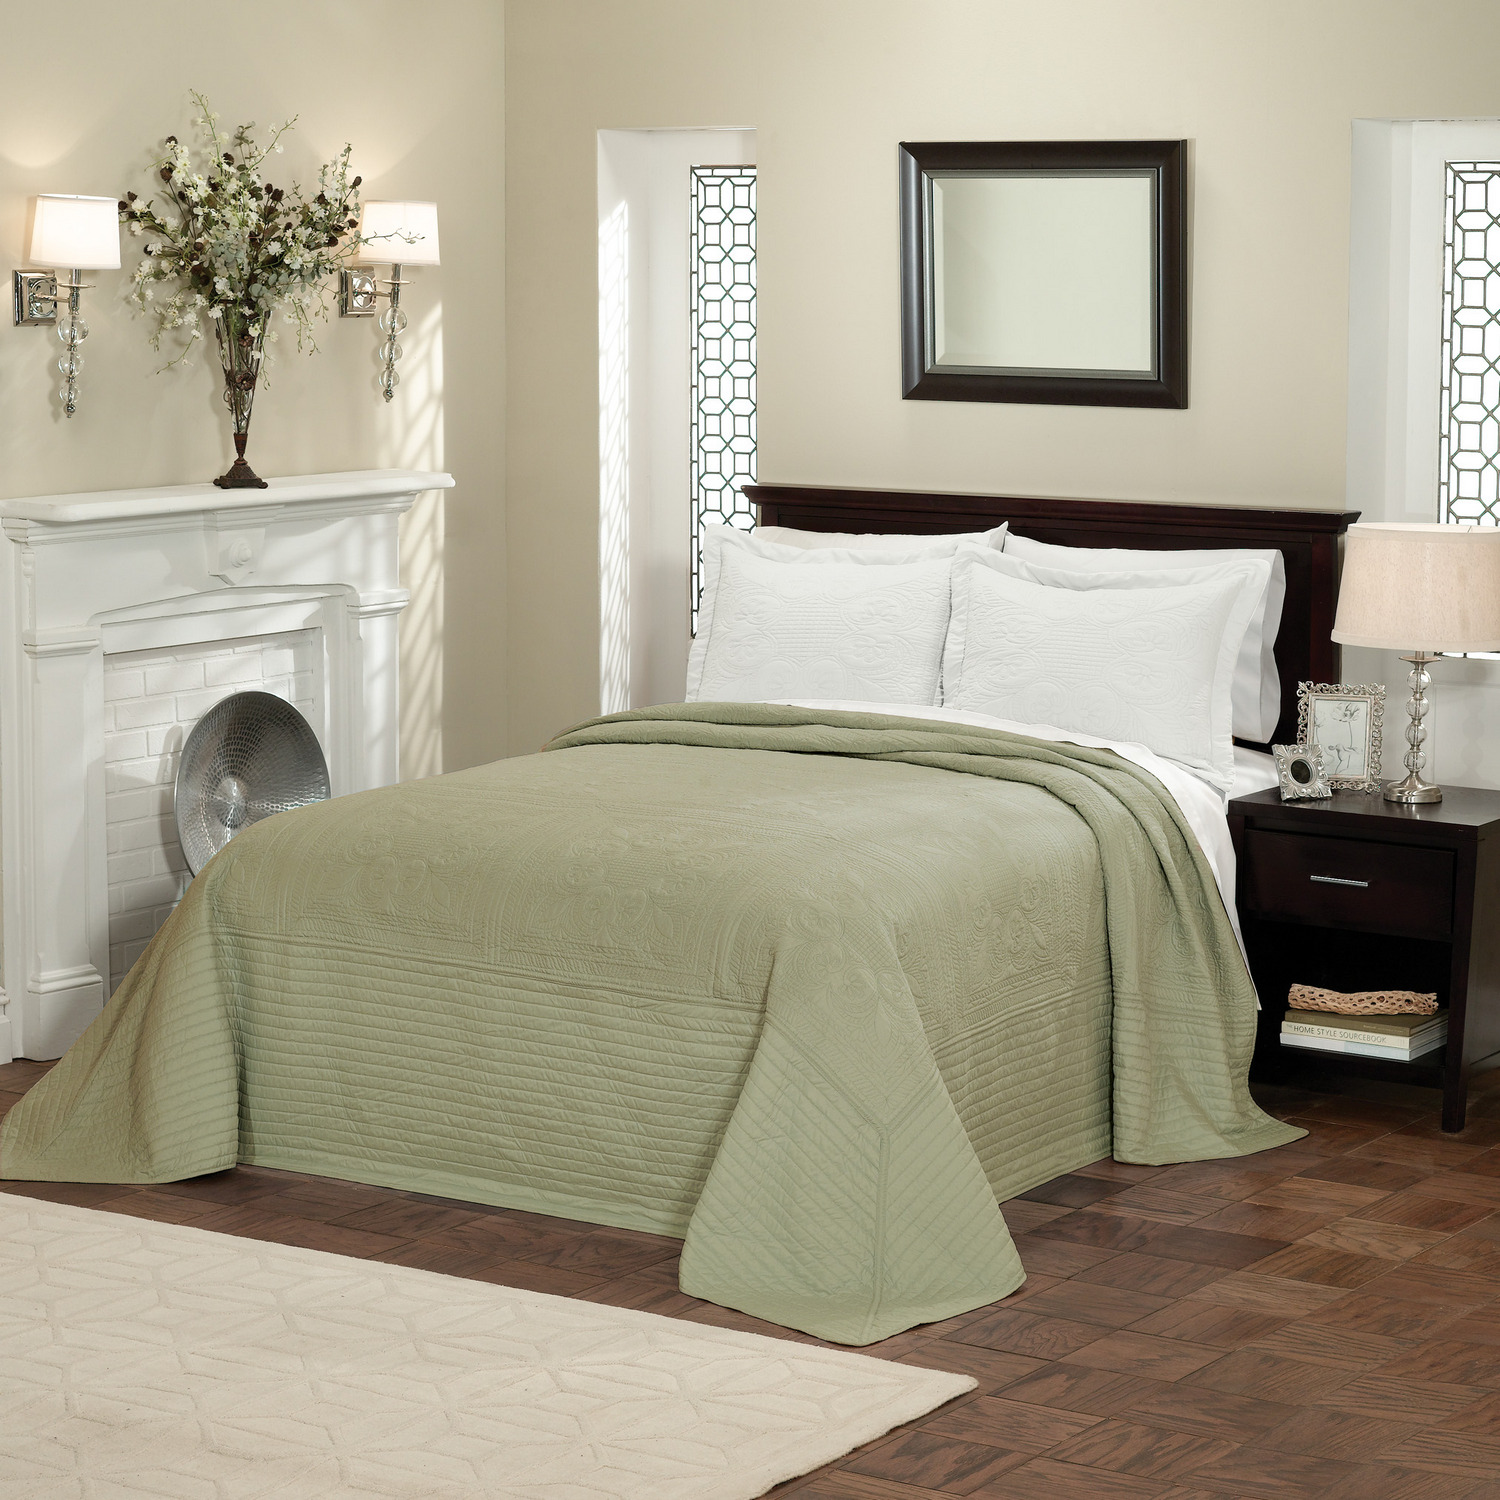 Pem America Bedding by Pem America French Tile Queen Bedspread Sage at Sears.com